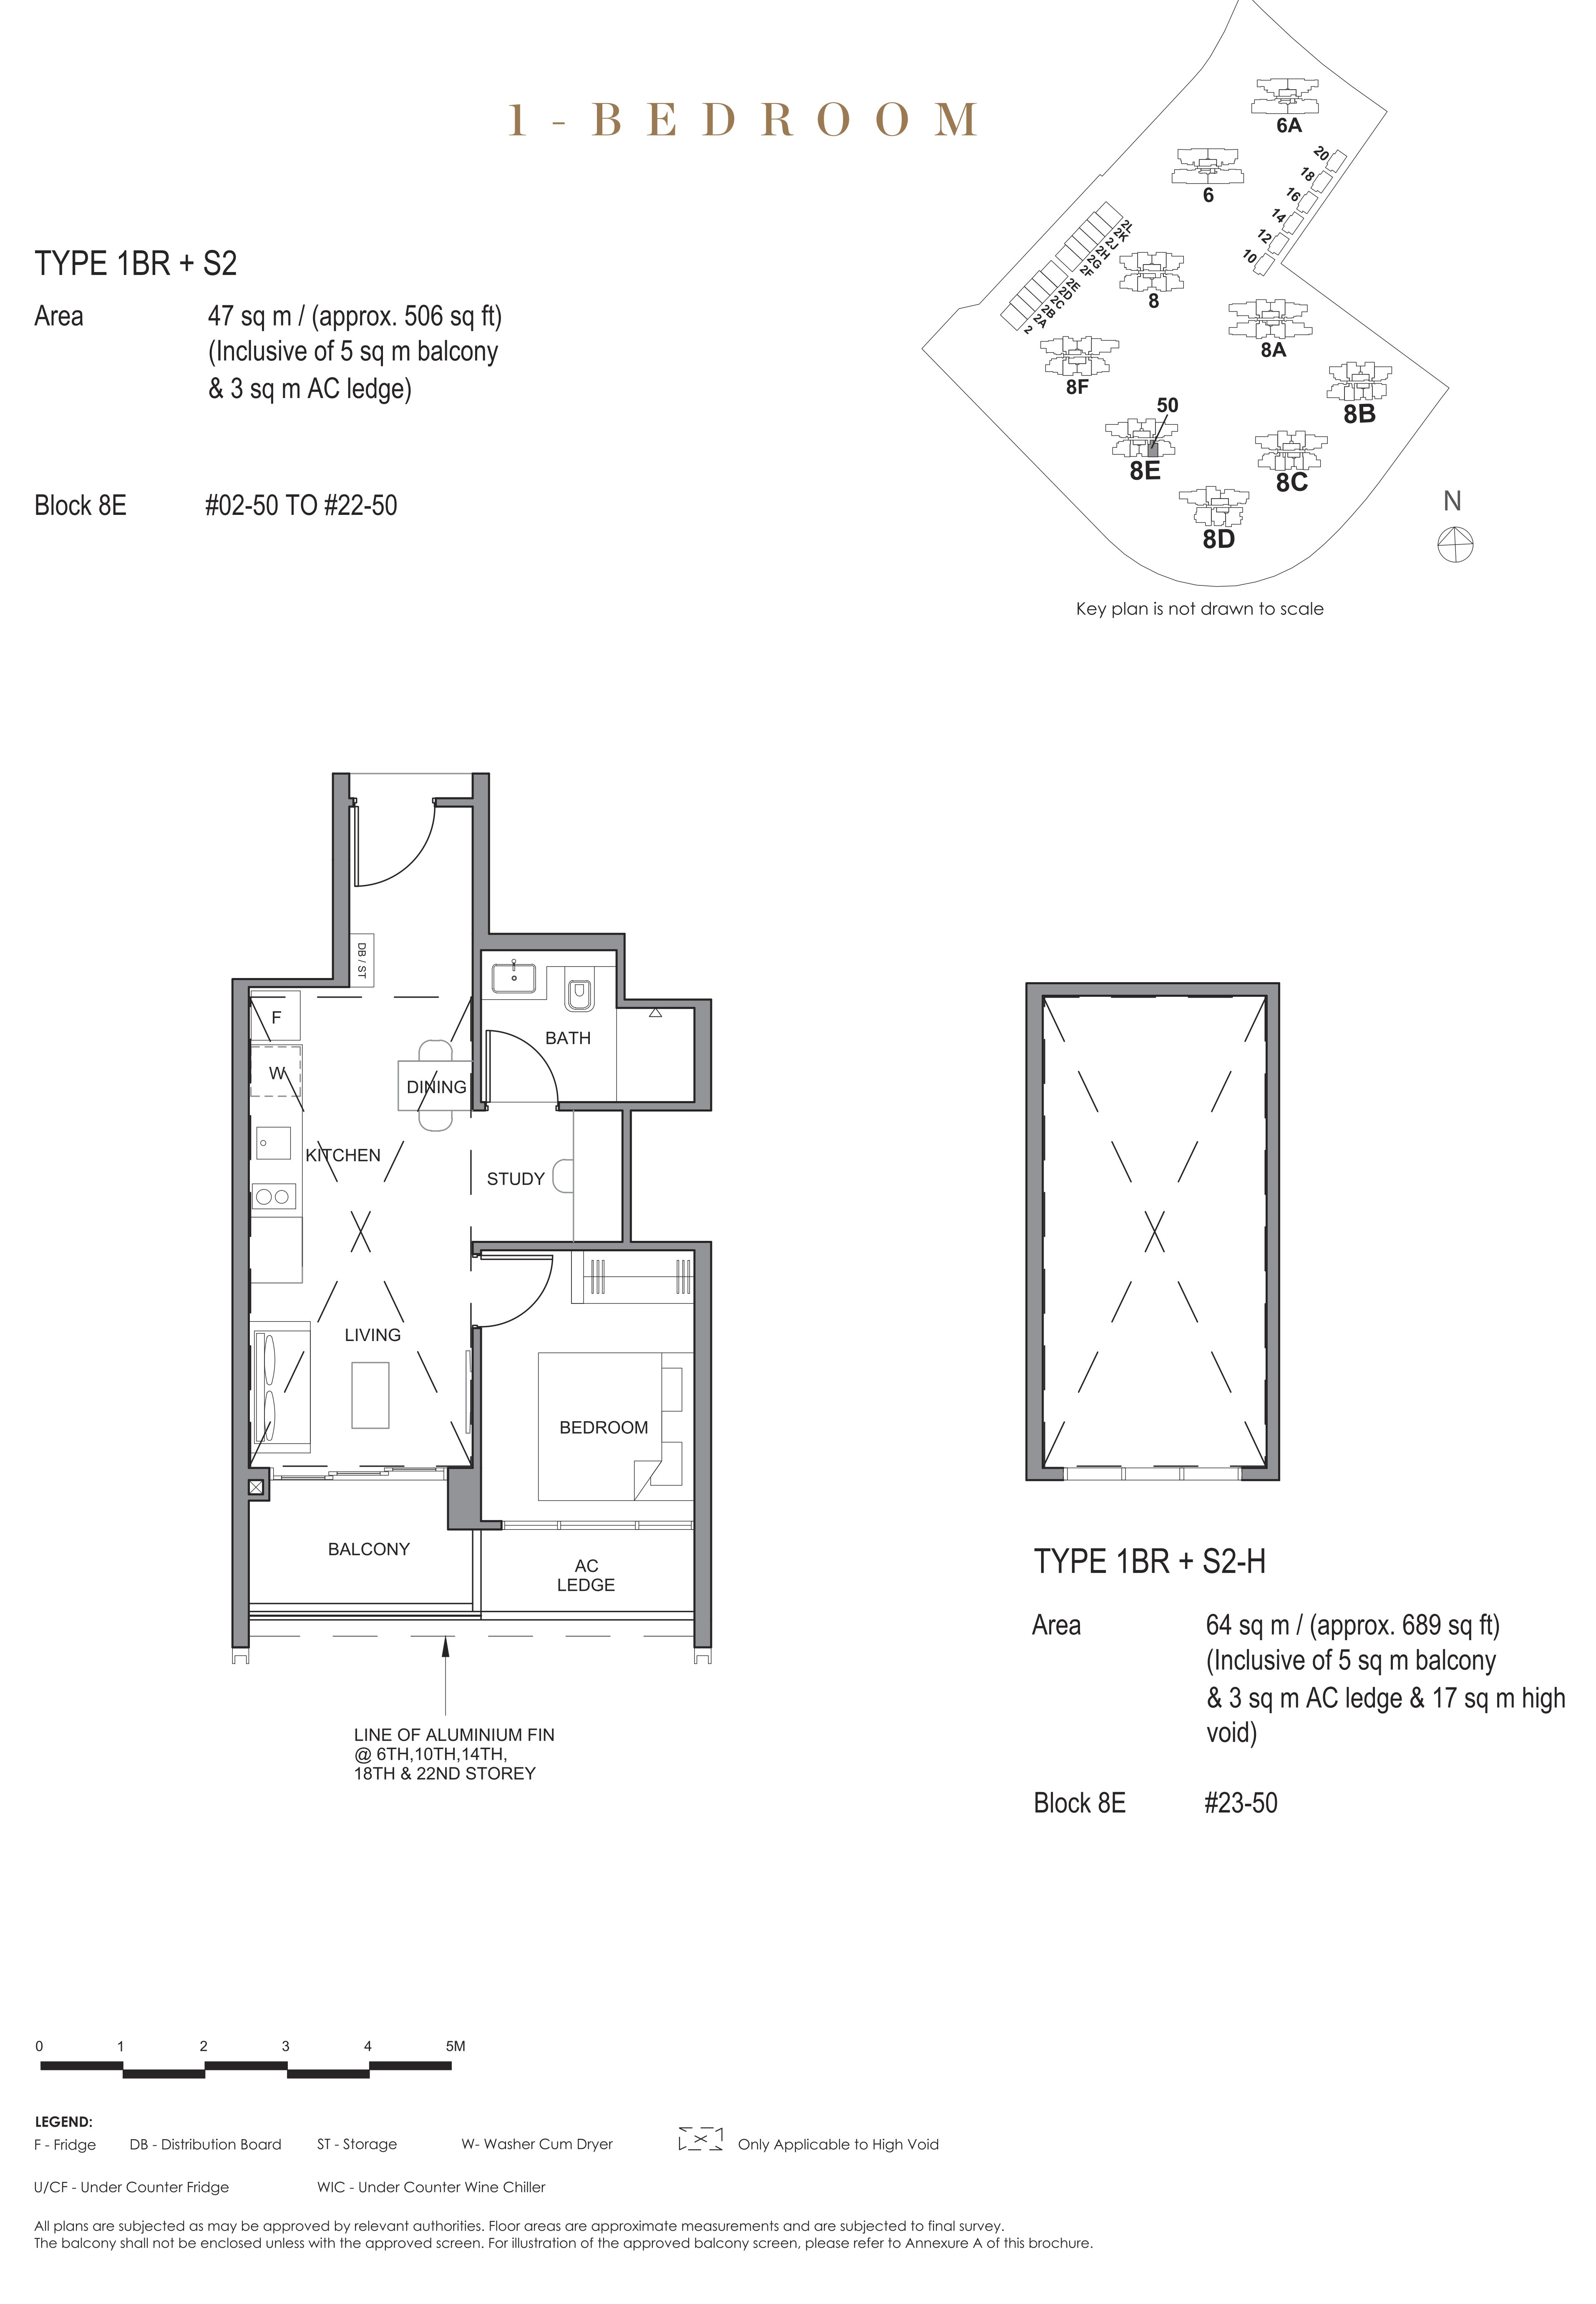 Parc Clematis 锦泰门第 contemporary 1 bedroom 1卧房-书房 1 BR-S2